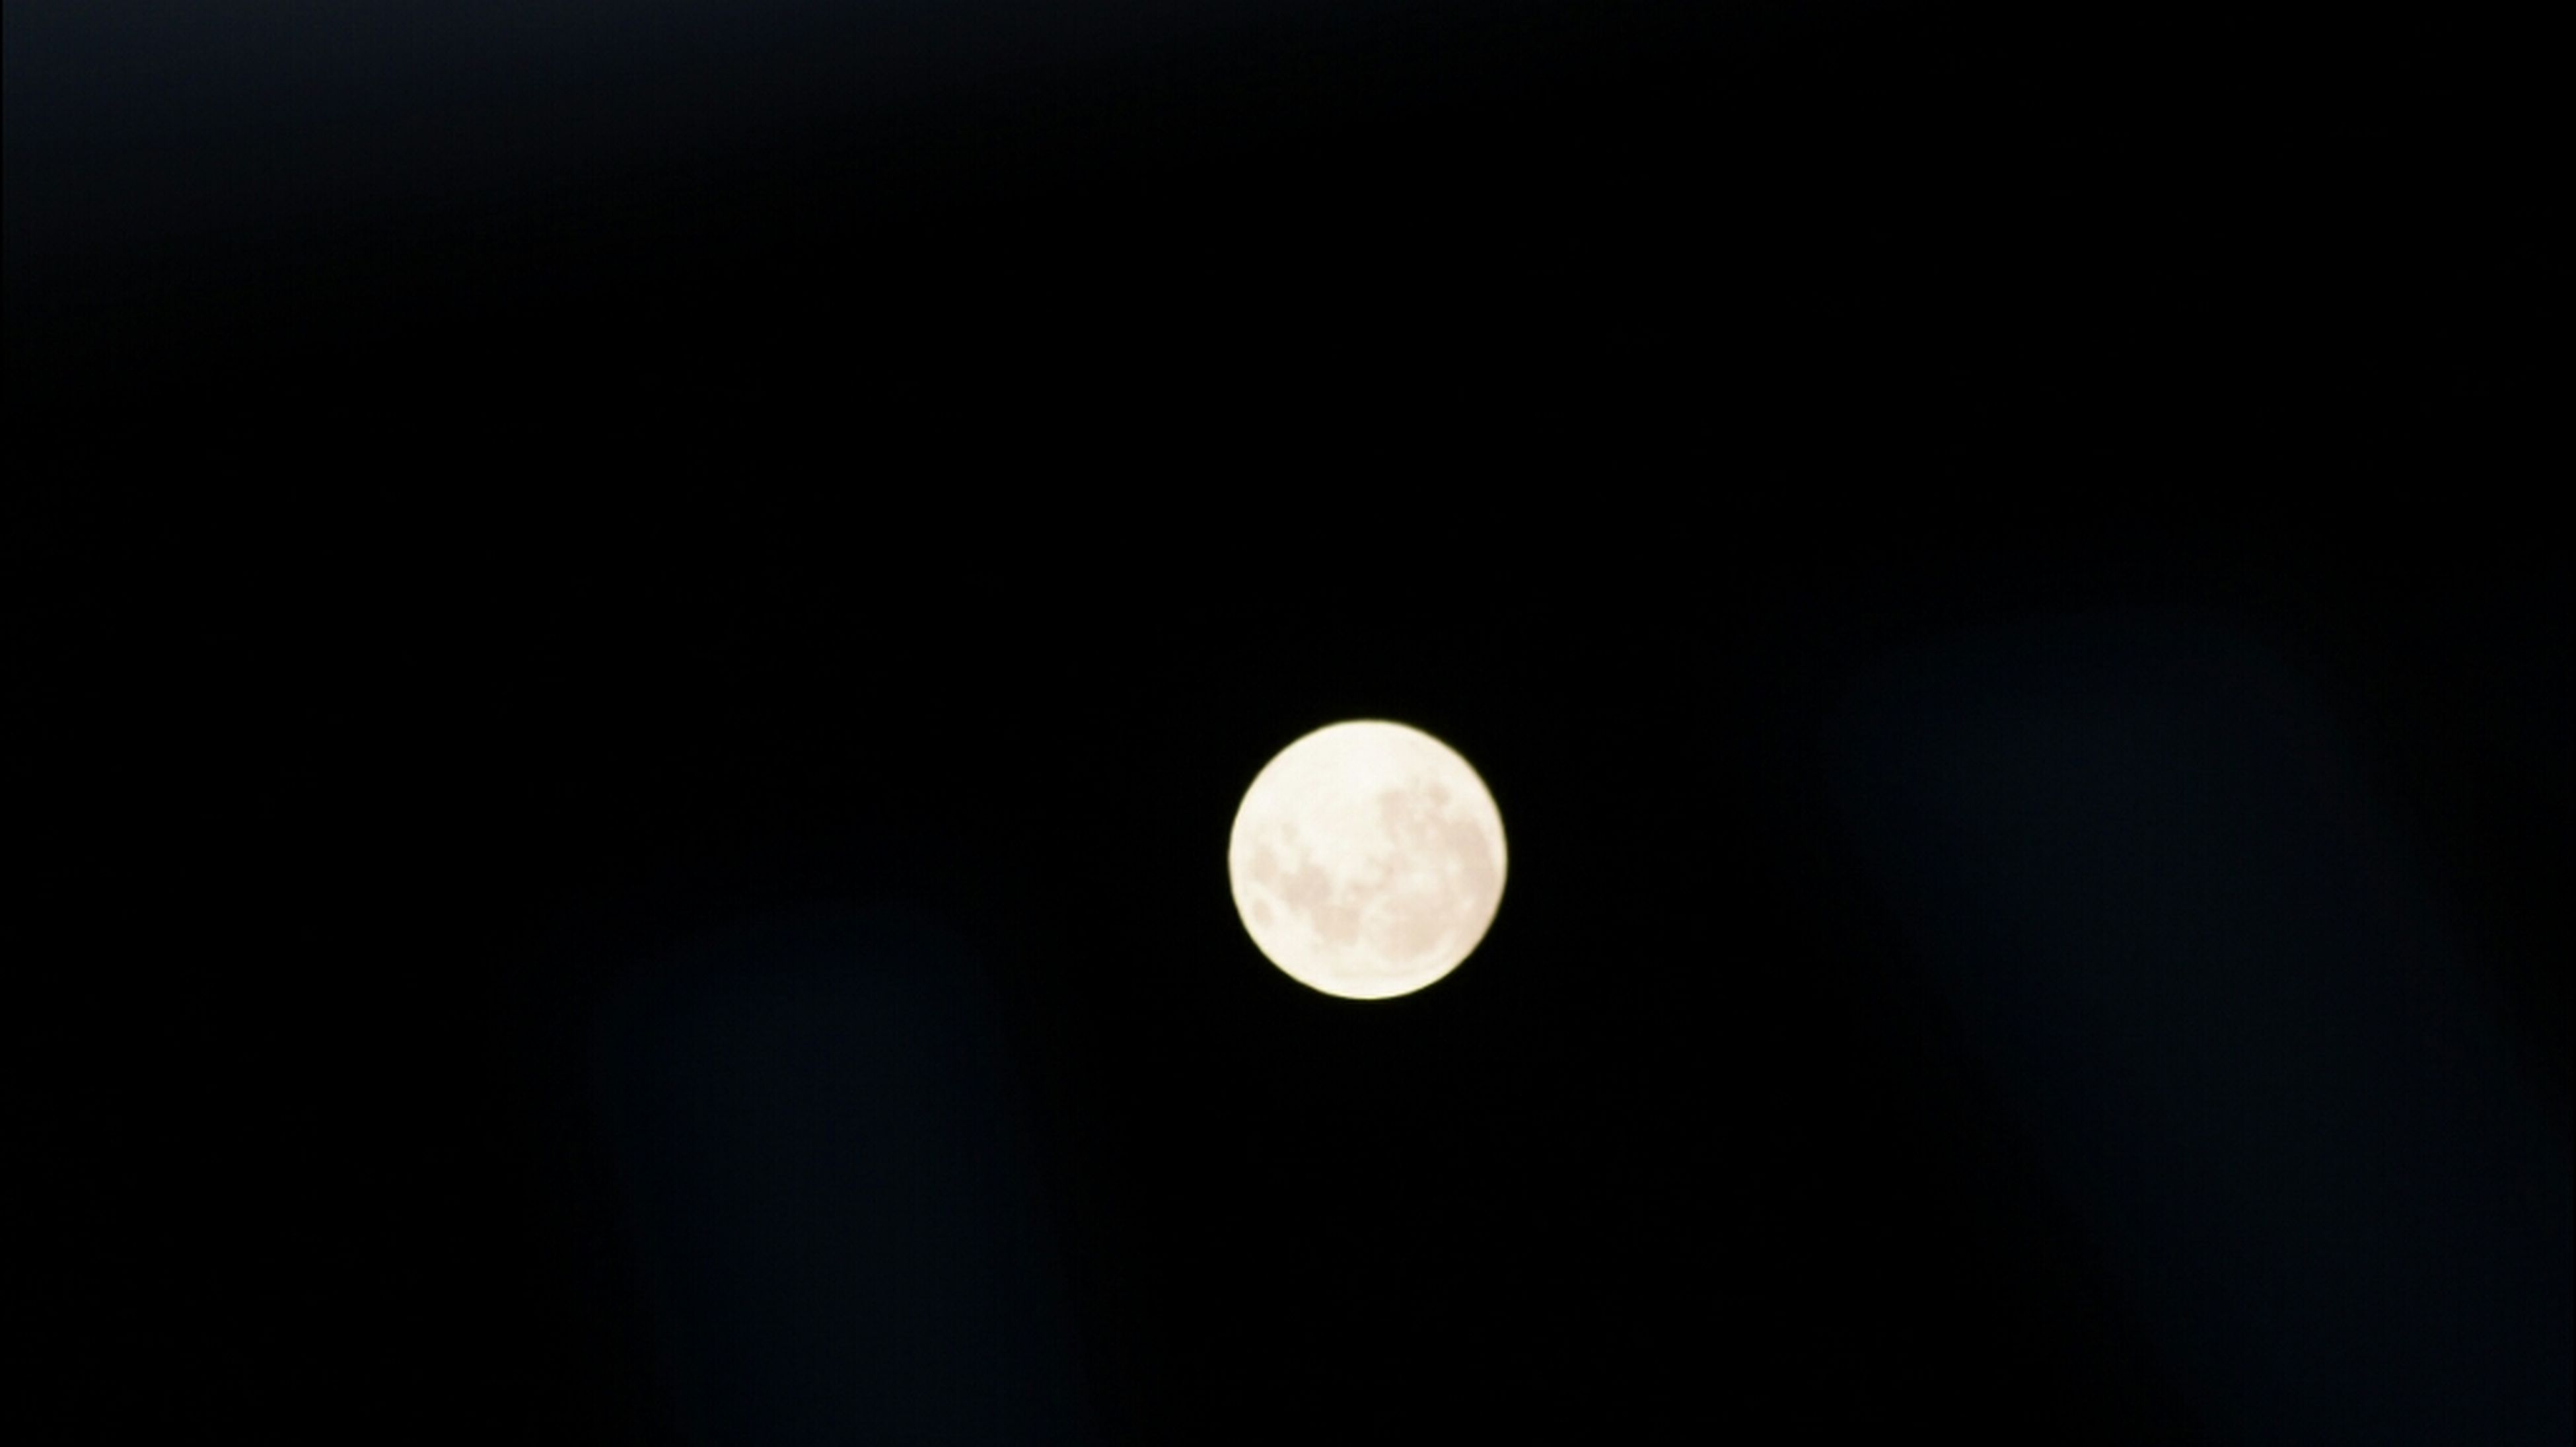 moon, astronomy, full moon, night, planetary moon, moon surface, circle, beauty in nature, copy space, low angle view, scenics, tranquil scene, sphere, tranquility, space exploration, dark, discovery, nature, clear sky, sky